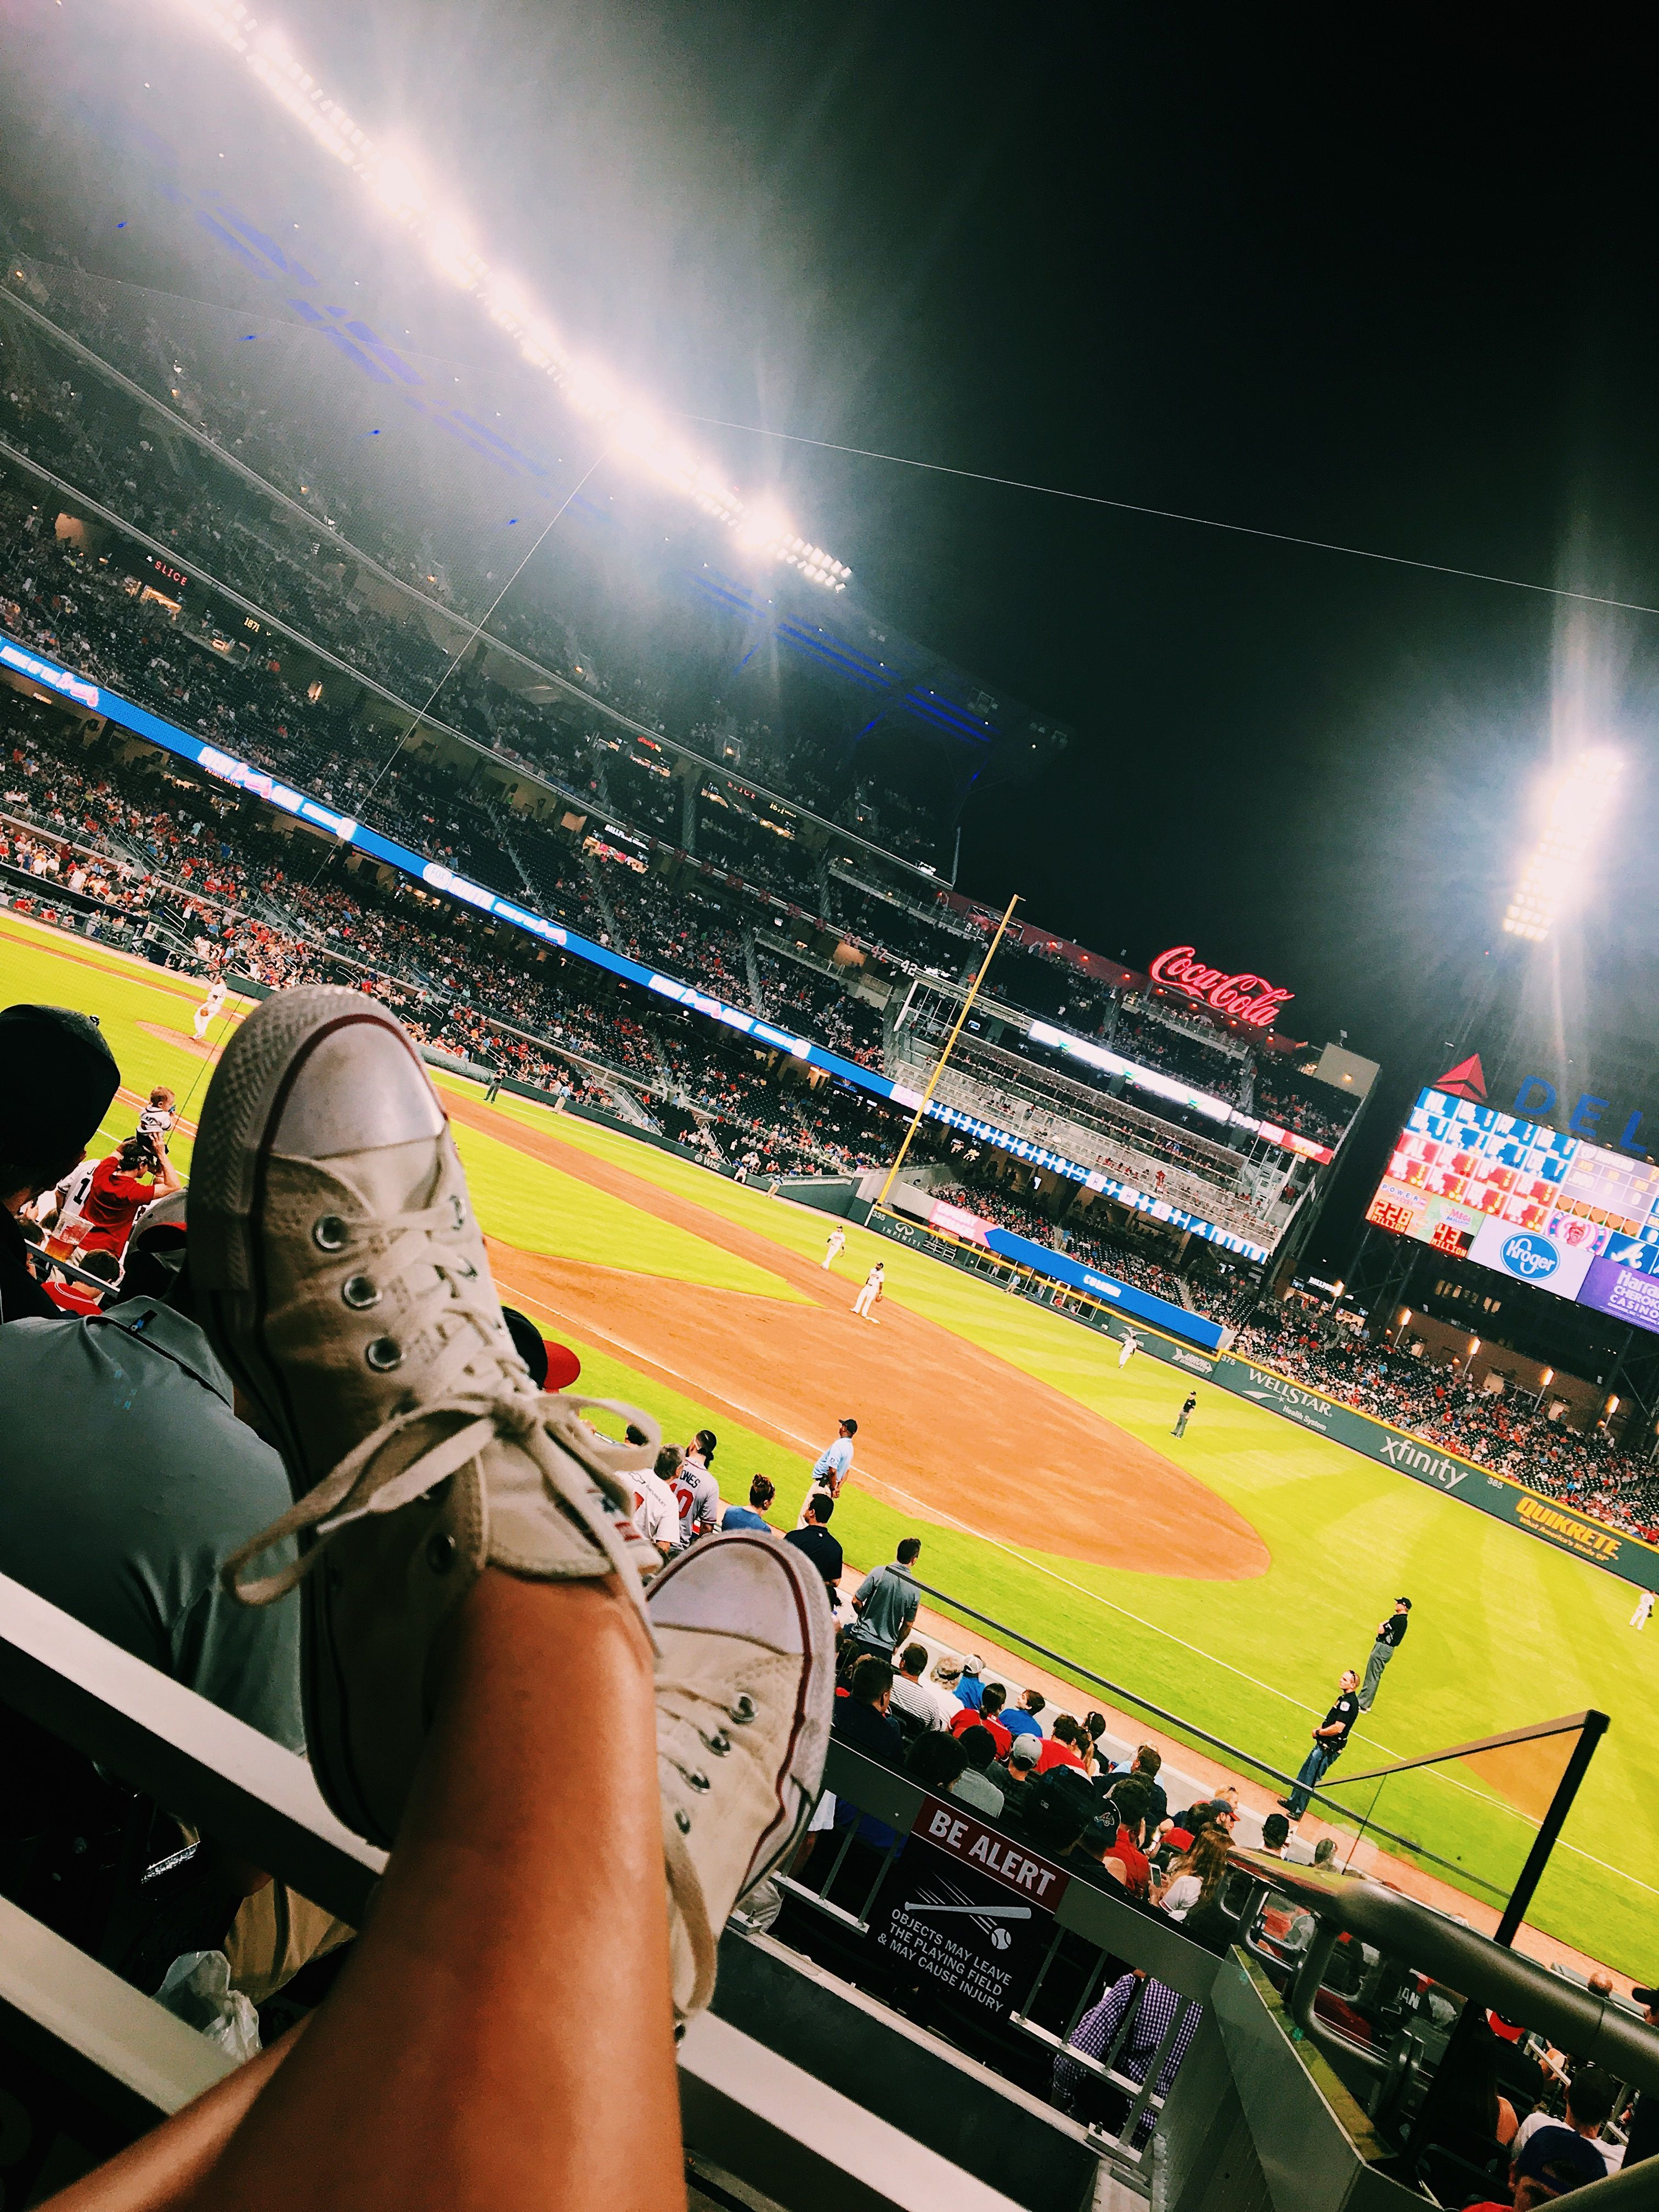 Atlanta Braves Game Photography Ideas Ig Jessicaclaark Vsco Jessicaclarrk Places To Go Travel Photography